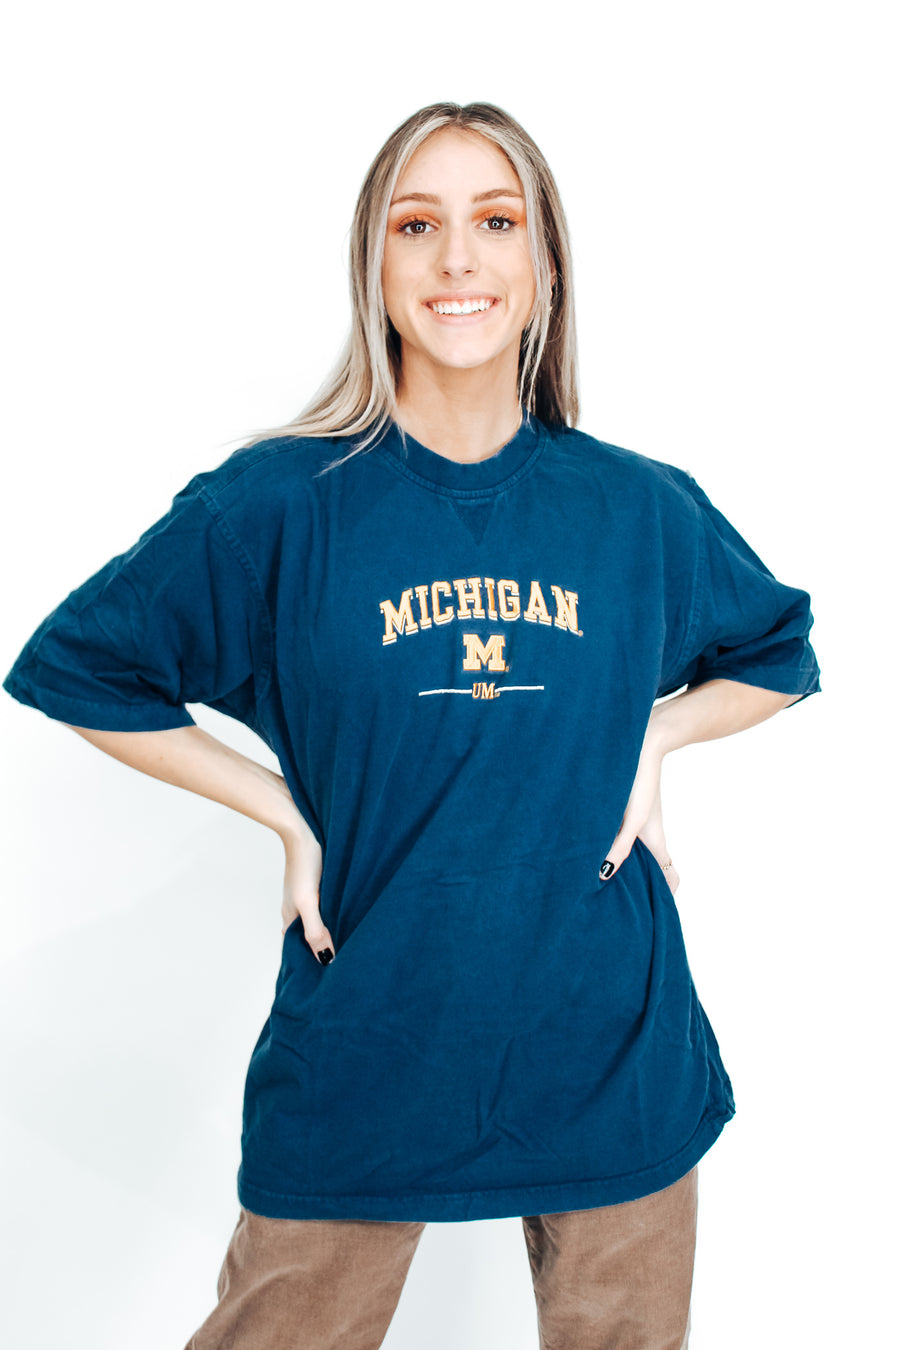 University of Michigan Vintage Tee - L